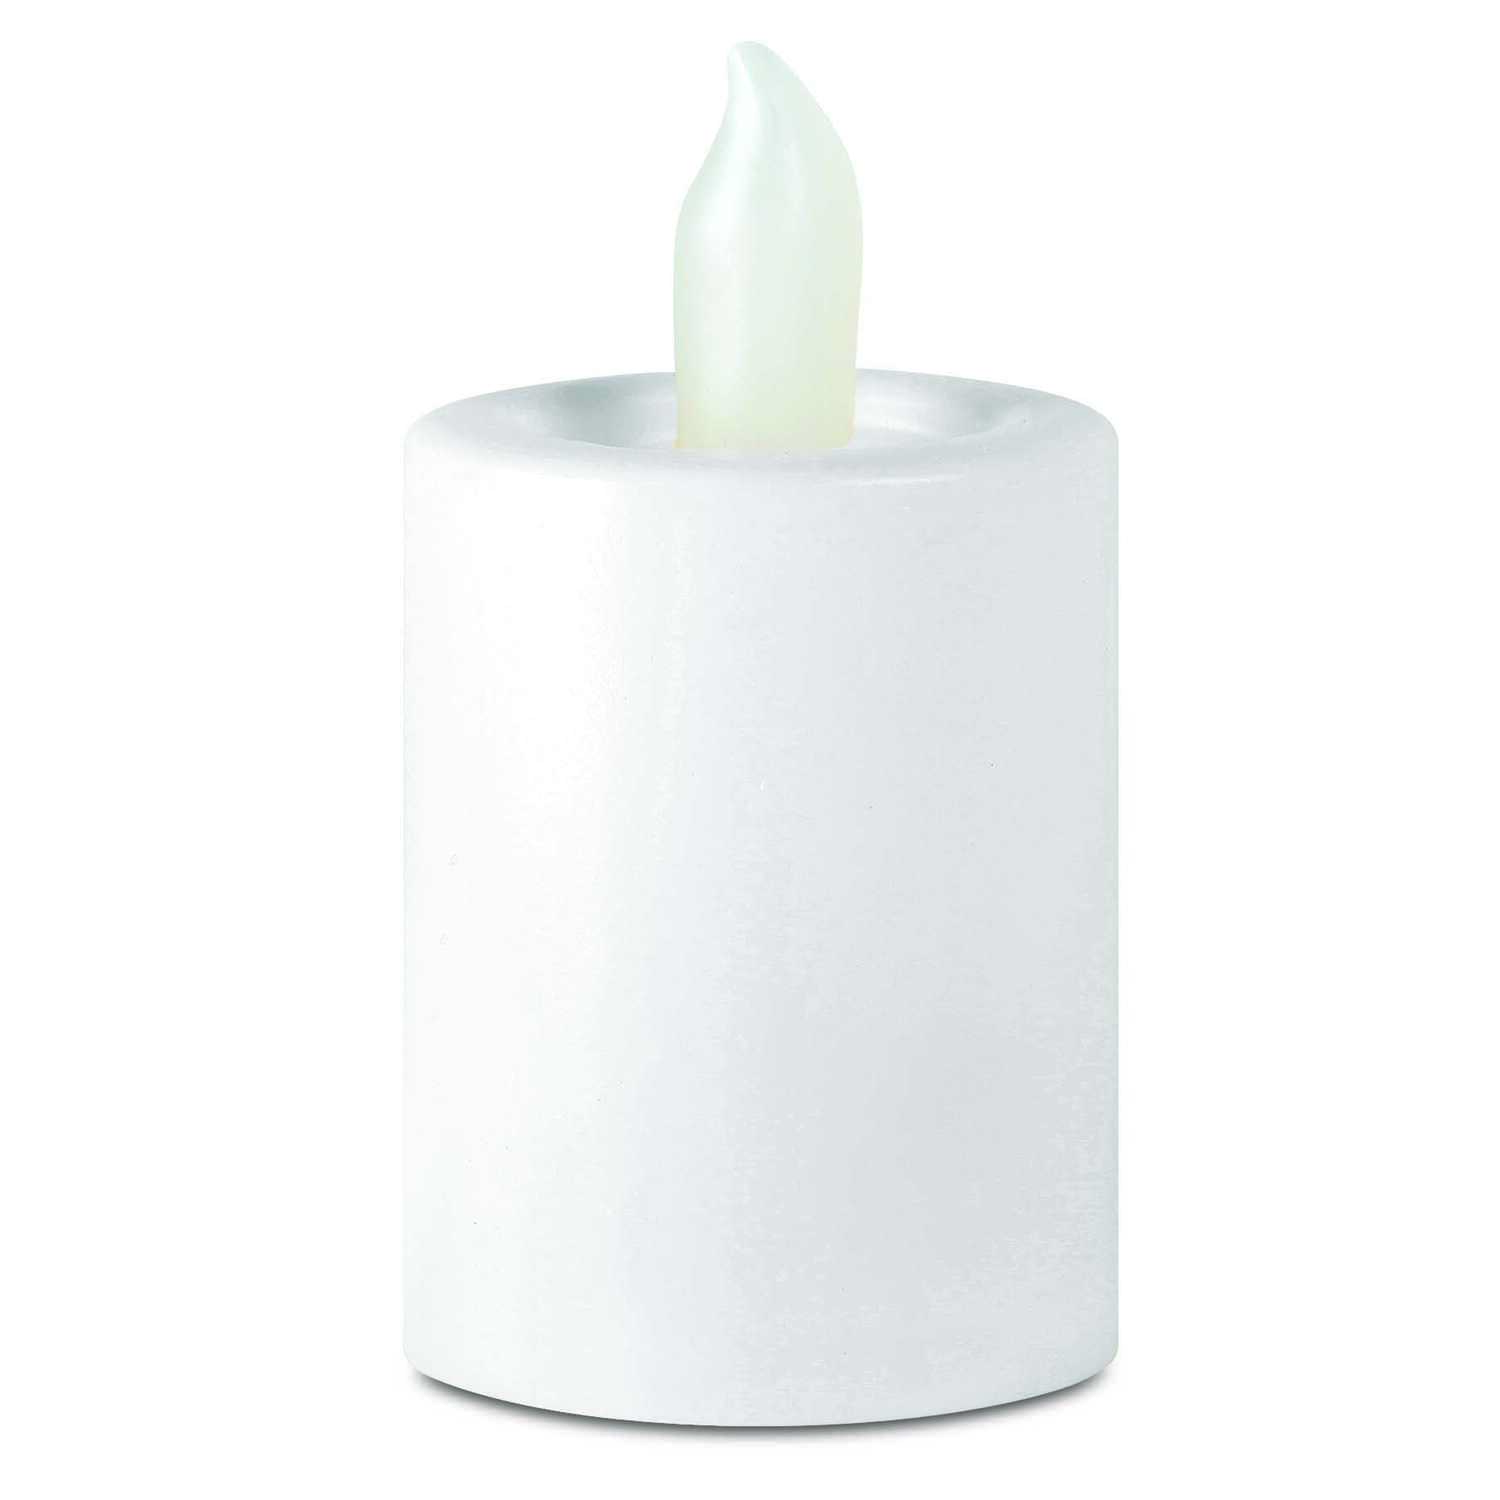 Order  White  Tealight and Votive  Flameless Flickering Candle  1-1/2 in. H x 1-1/2 in. Dia.